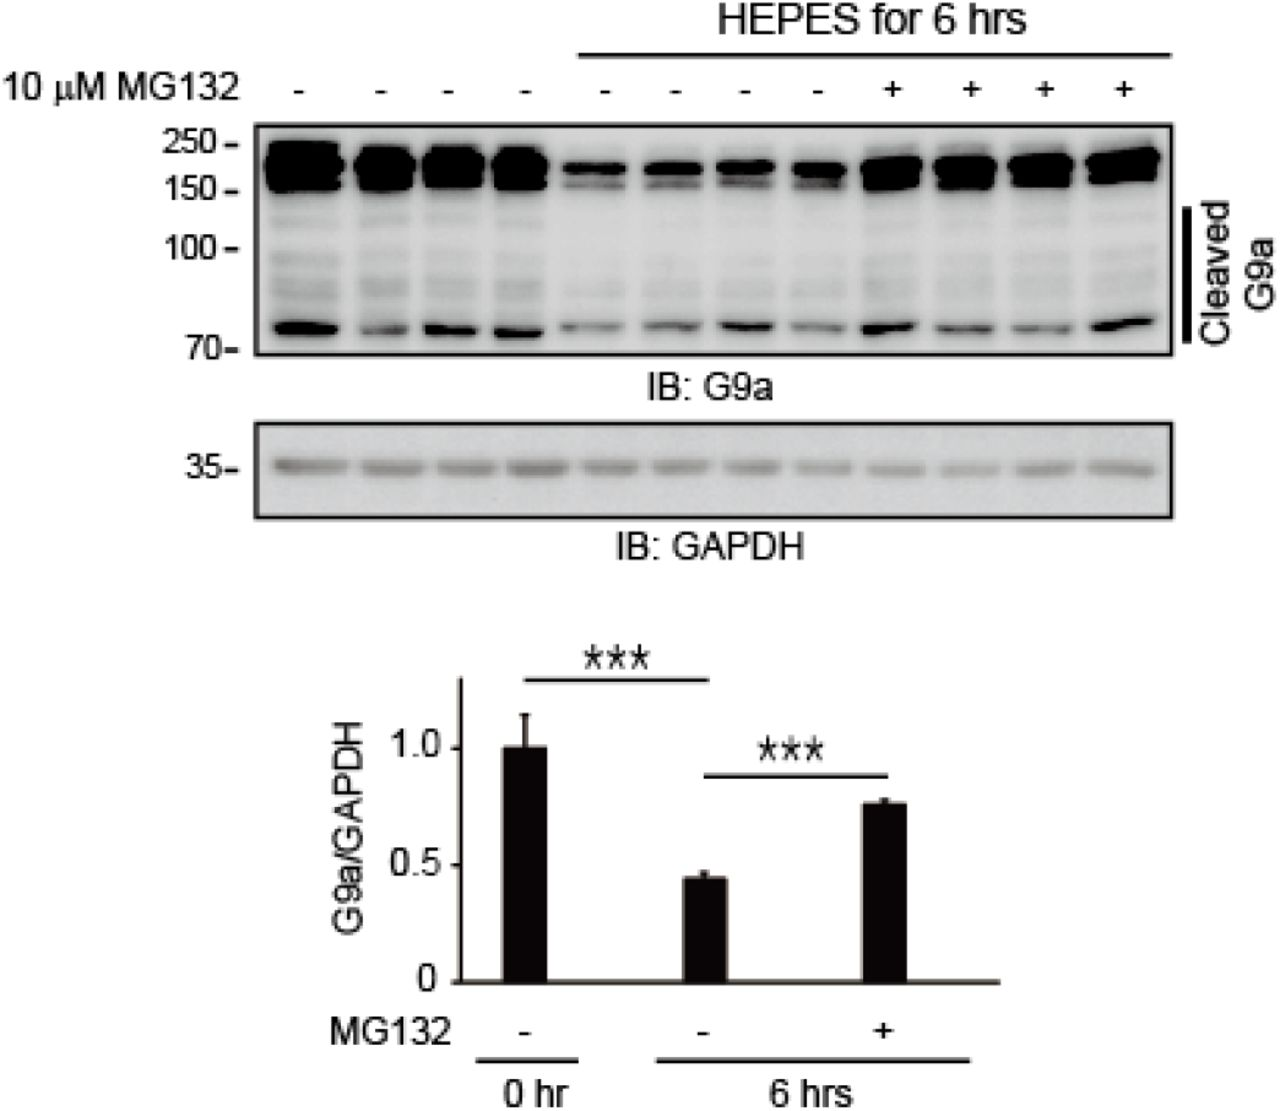 Endogenous G9a undergoes degradation via the UPS during autophagy. Autophagy induction by serum starvation (HEPES) diminished the endogenous G9a protein level in Hela cells. In the presence of MG132, a proteasome inhibitor, endogenous G9a degradation was significantly reduced under starvation in HEPES medium, indicating that G9a degradation was facilitated by the UPS (mean ± SEM of n = 4 replicates; ***p